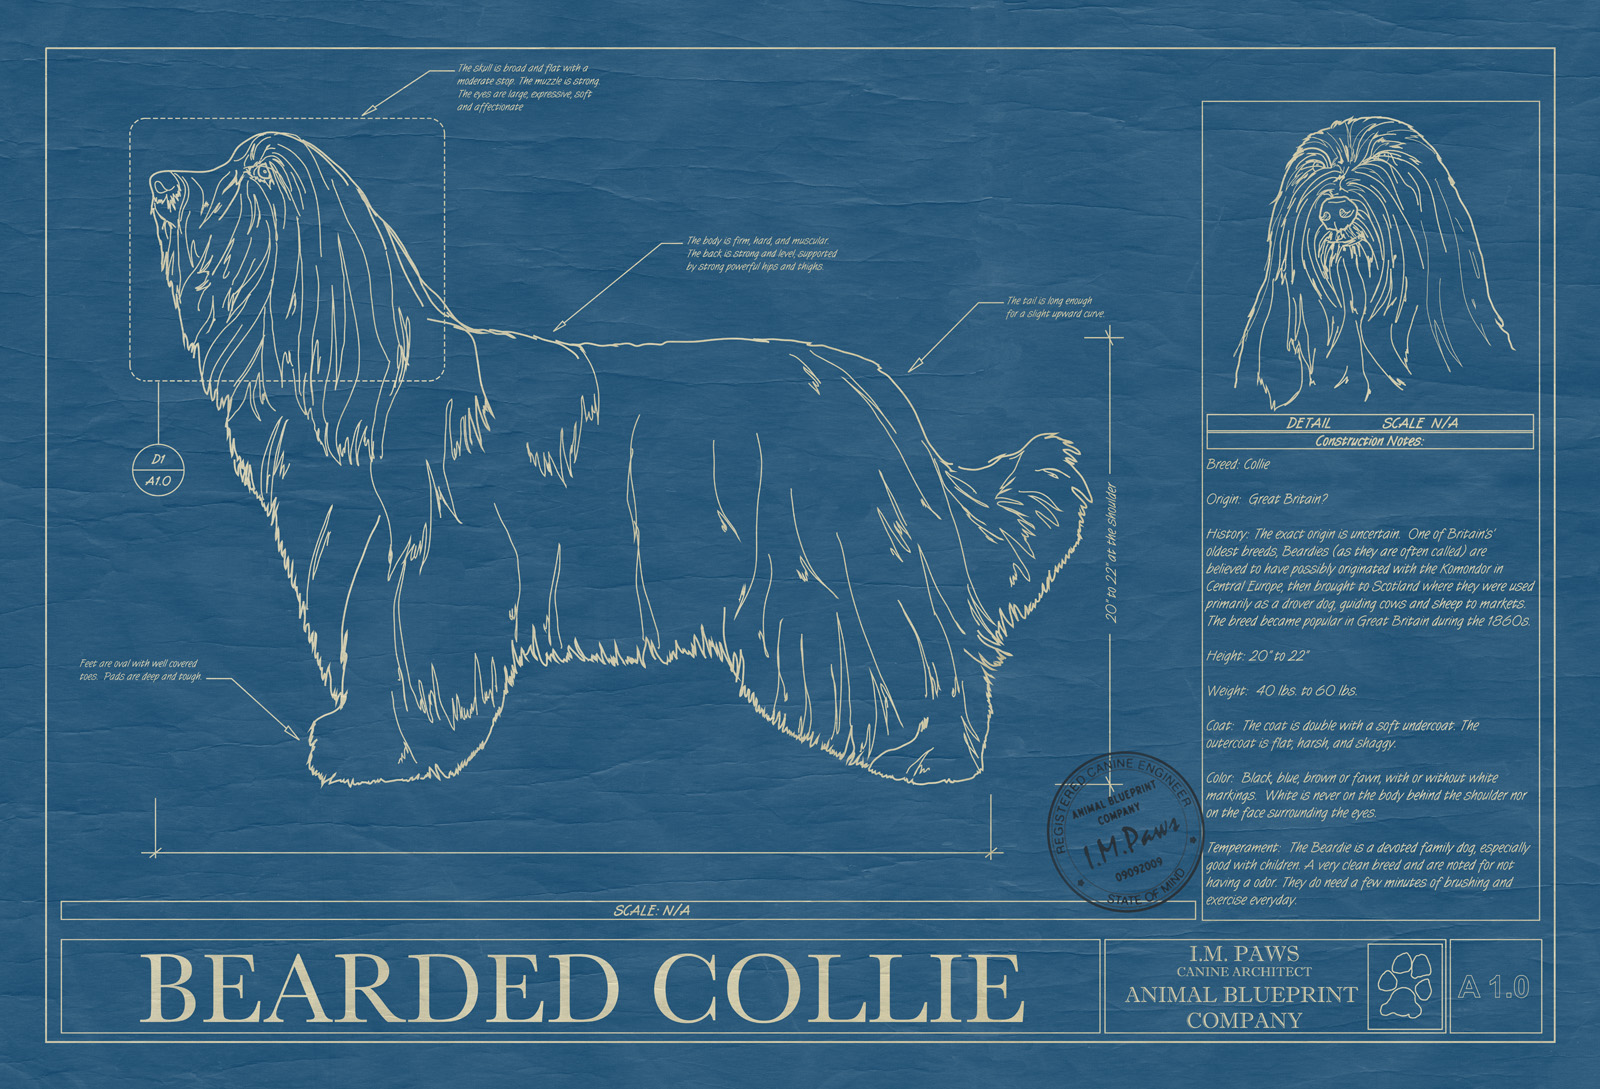 Bearded collie animal blueprint company bearded collie dog blueprint malvernweather Gallery